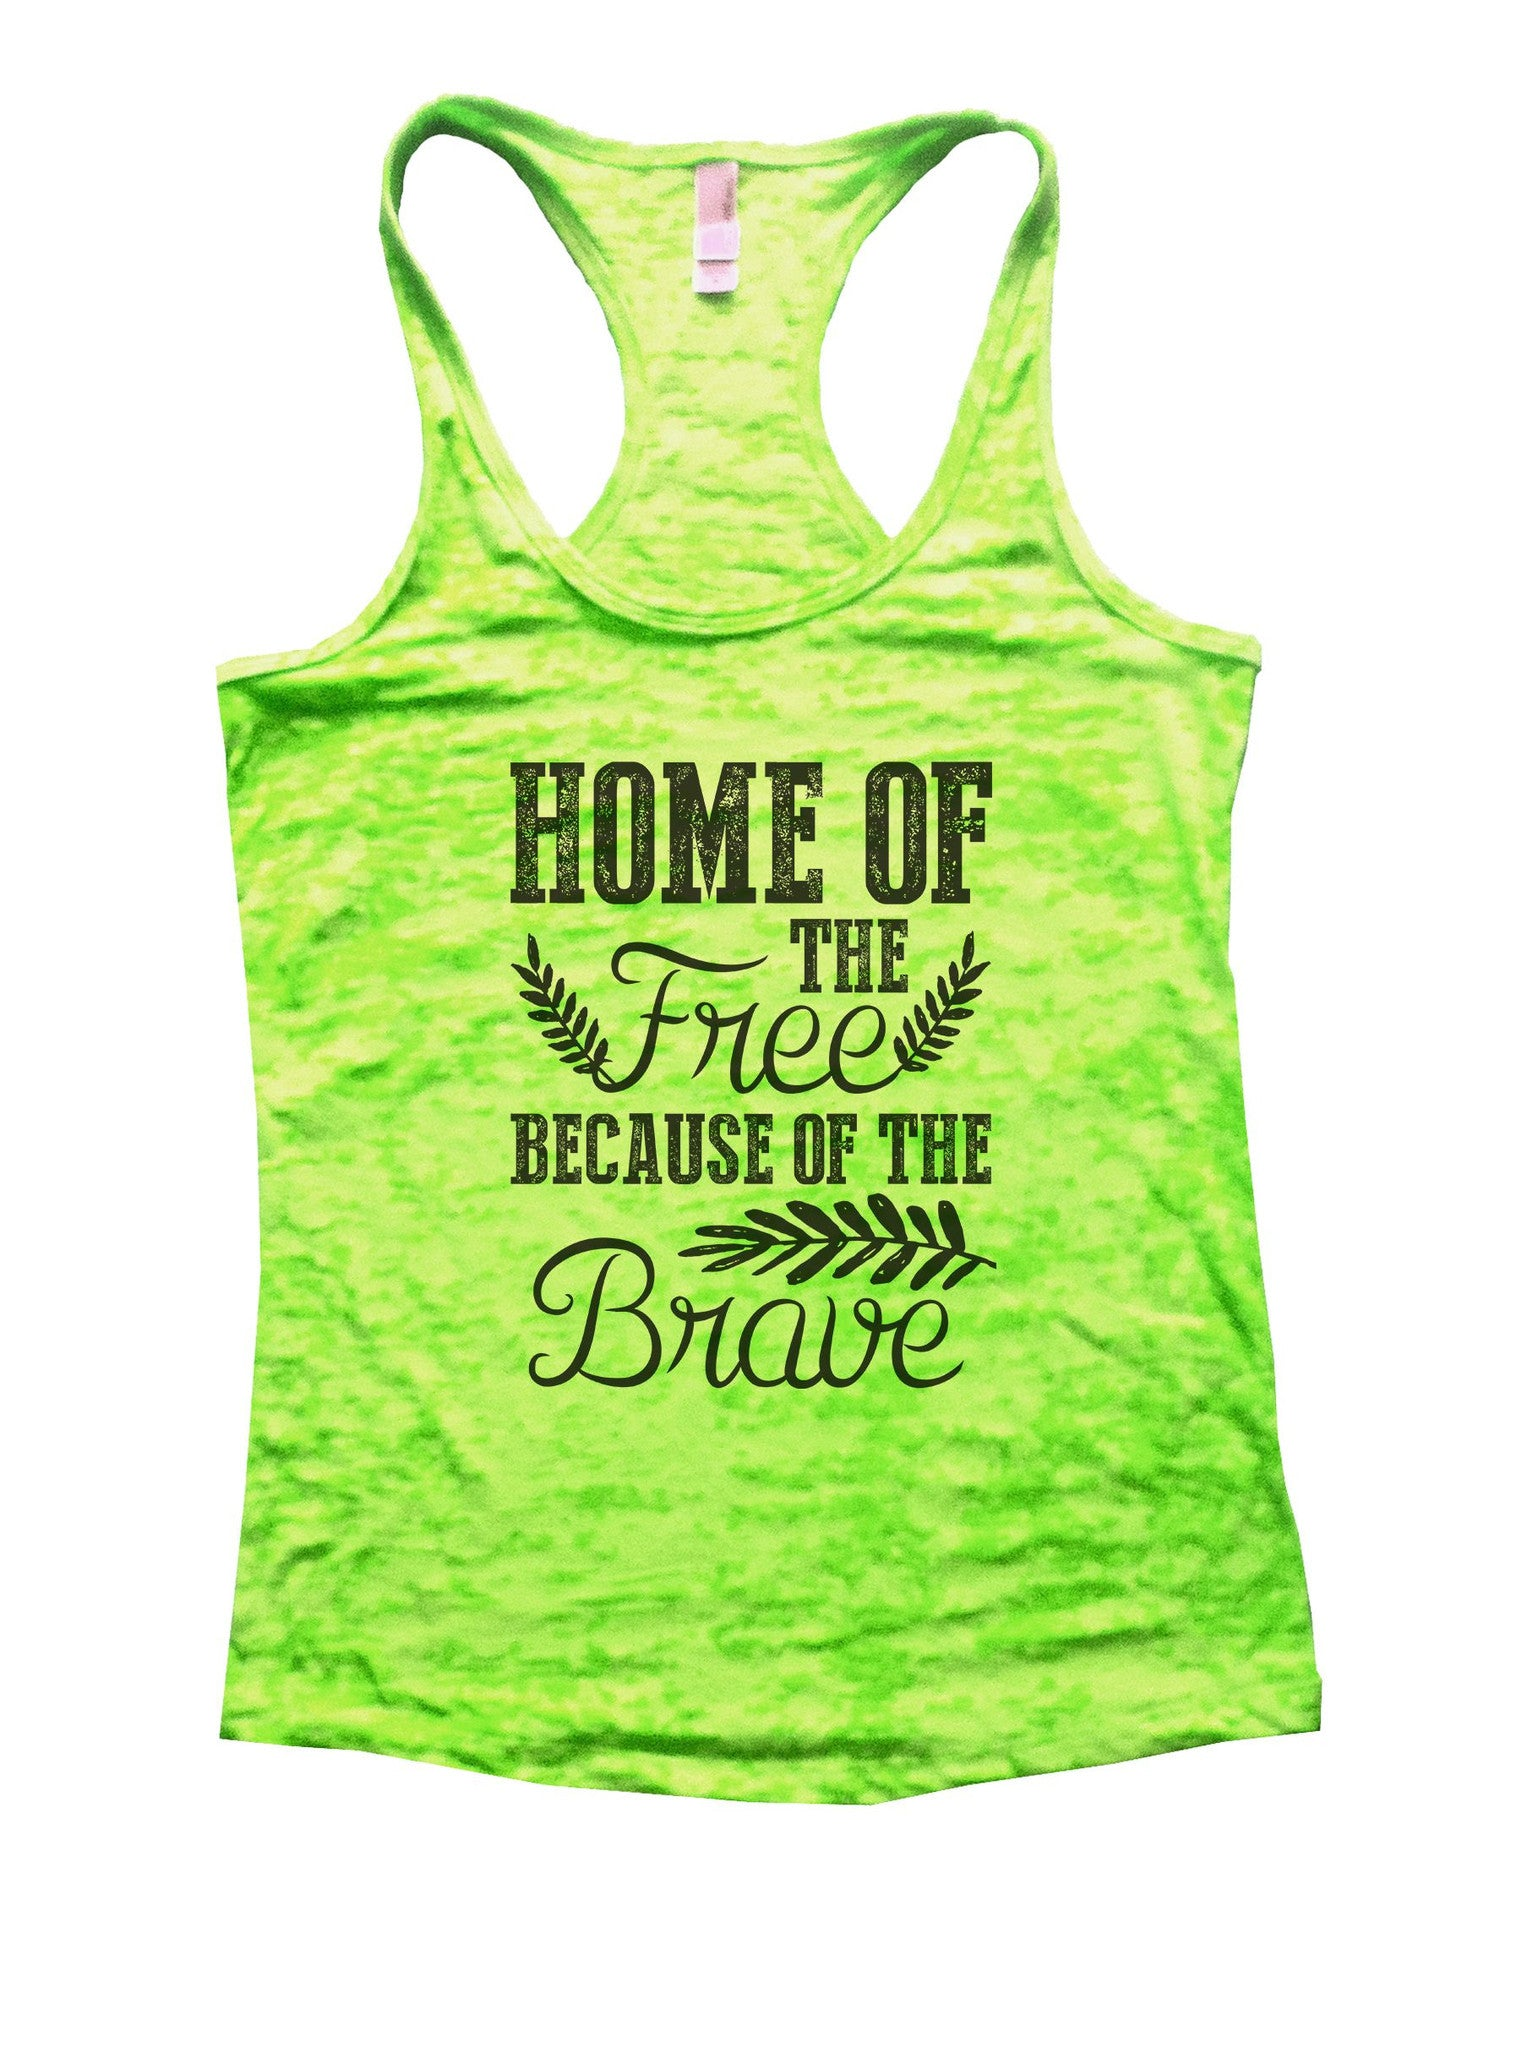 Home Of The Free Because Of The Brave Burnout Tank Top By BurnoutTankTops.com - 978 - Funny Shirts Tank Tops Burnouts and Triblends  - 1